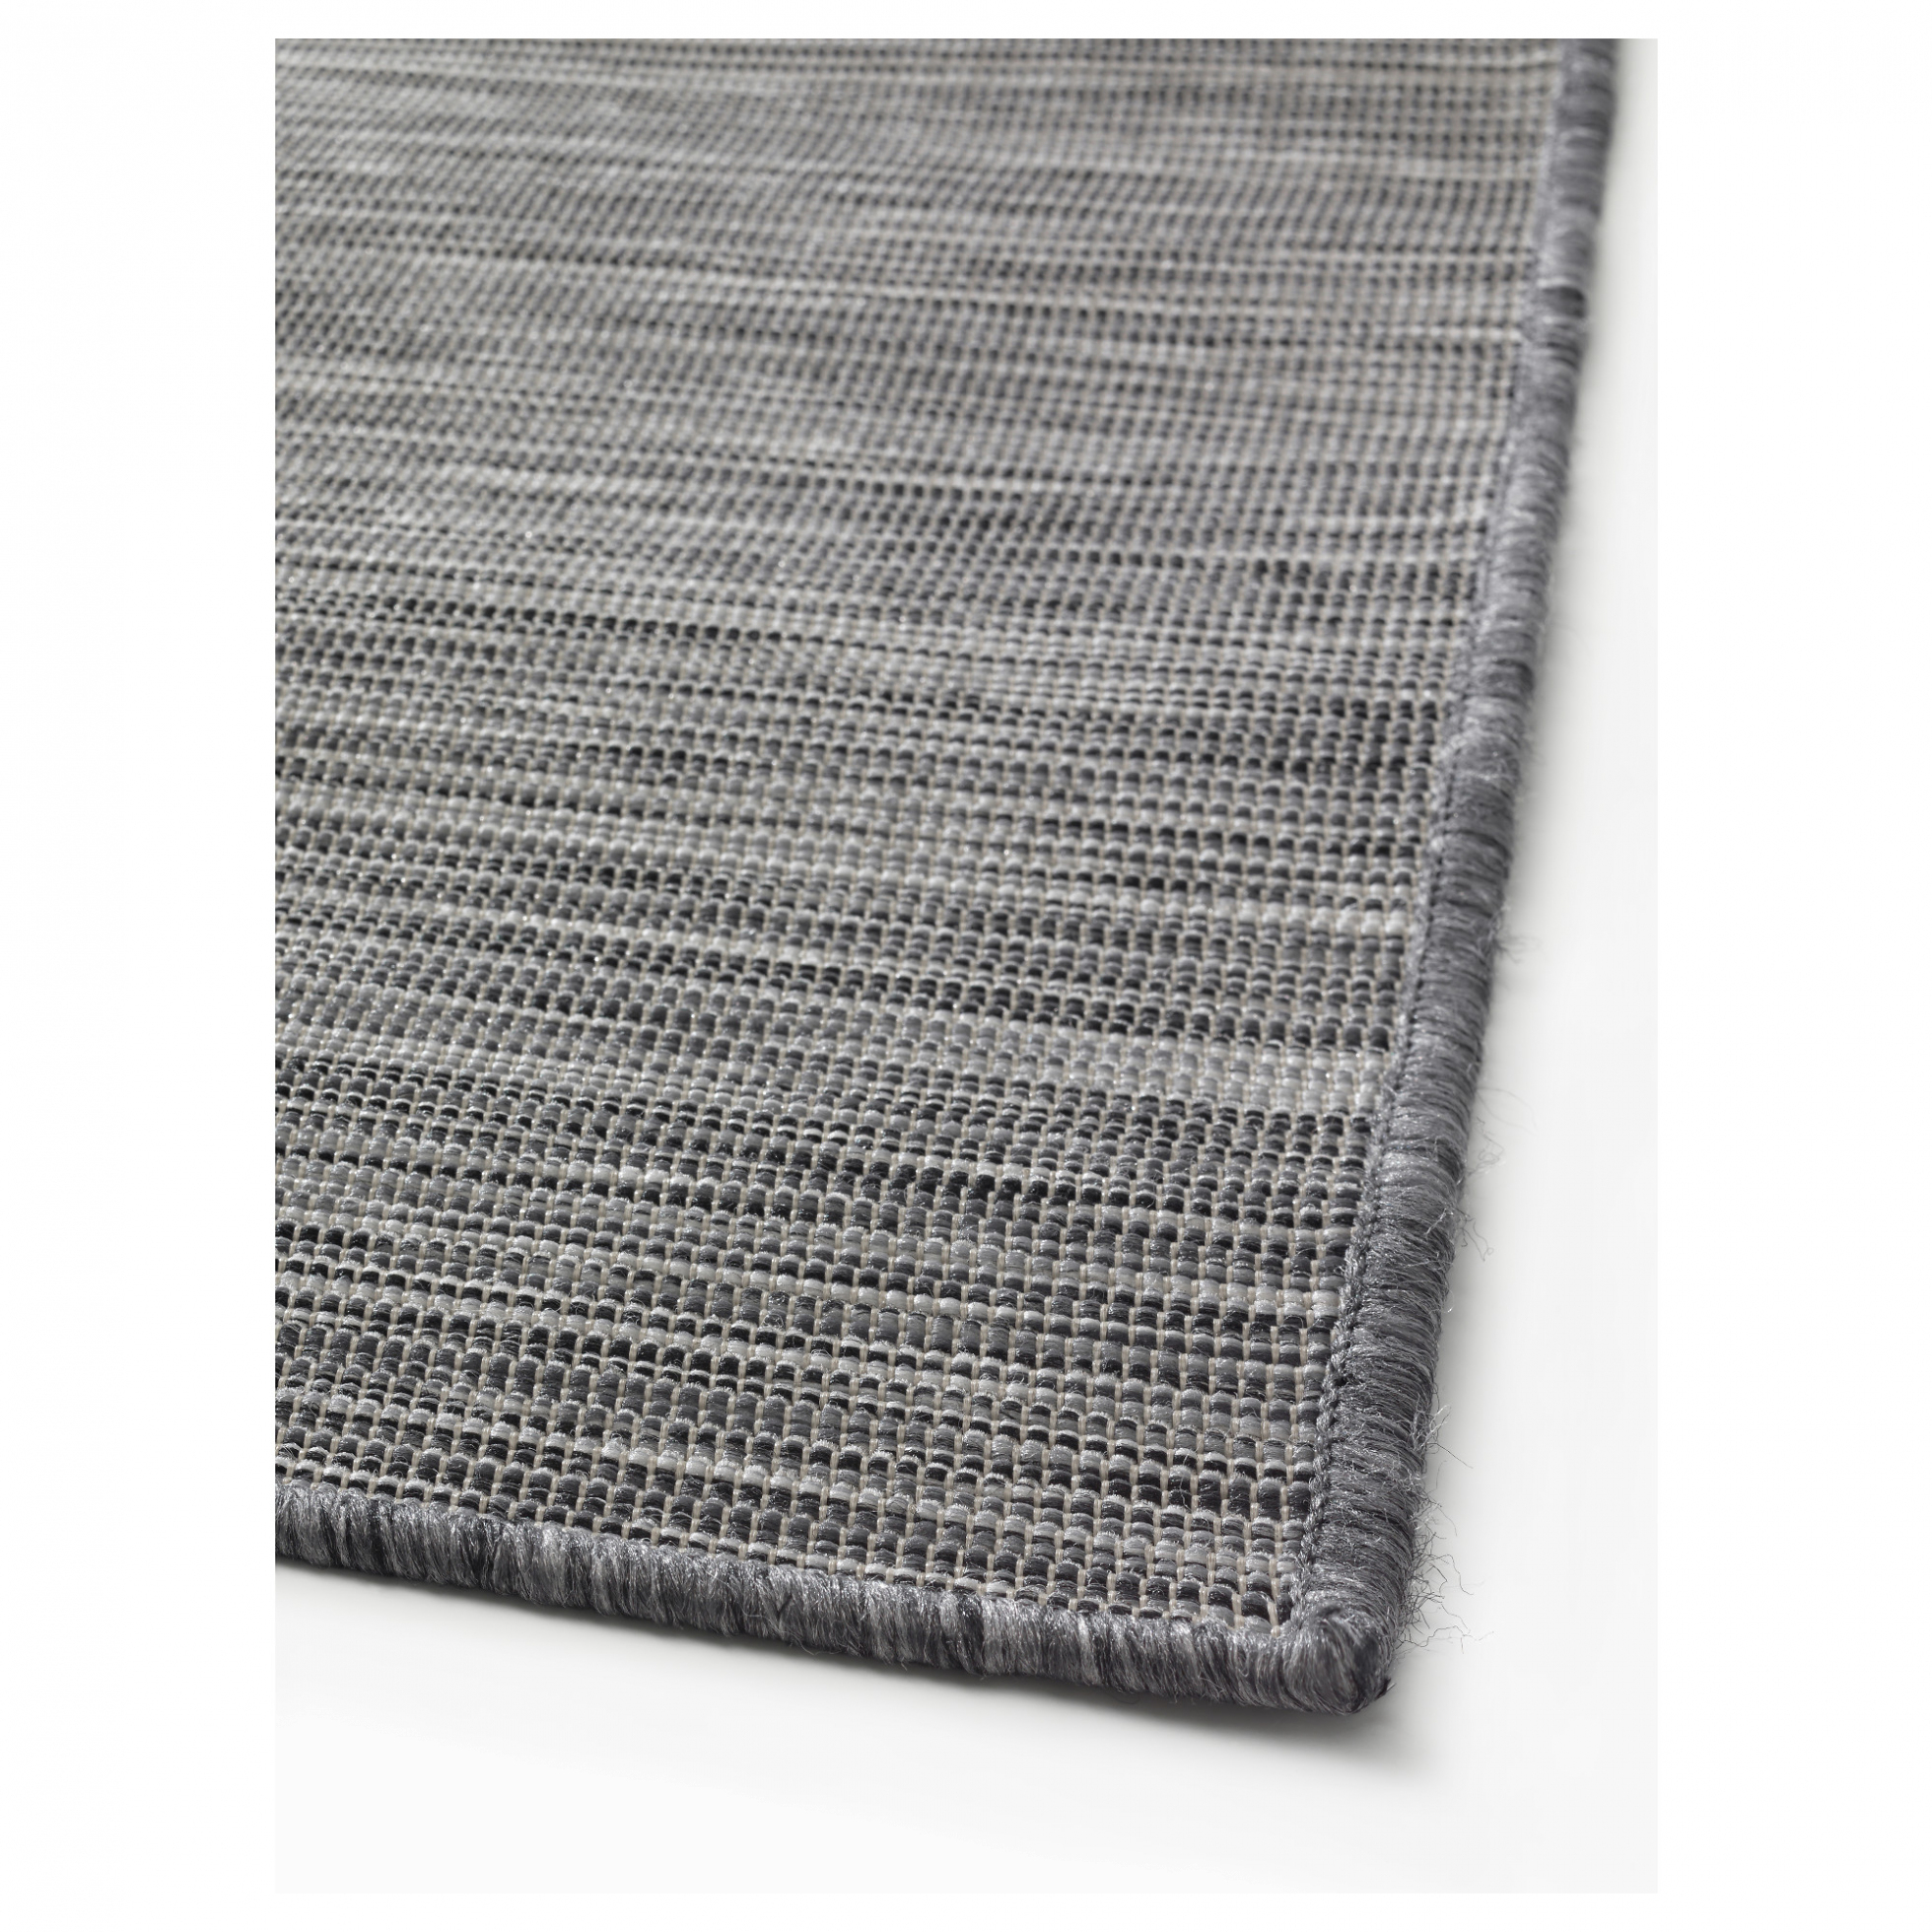 immaculate outdoor rugs ikea applied to your residence idea: hodde rug  flatwoven, DYCZINE